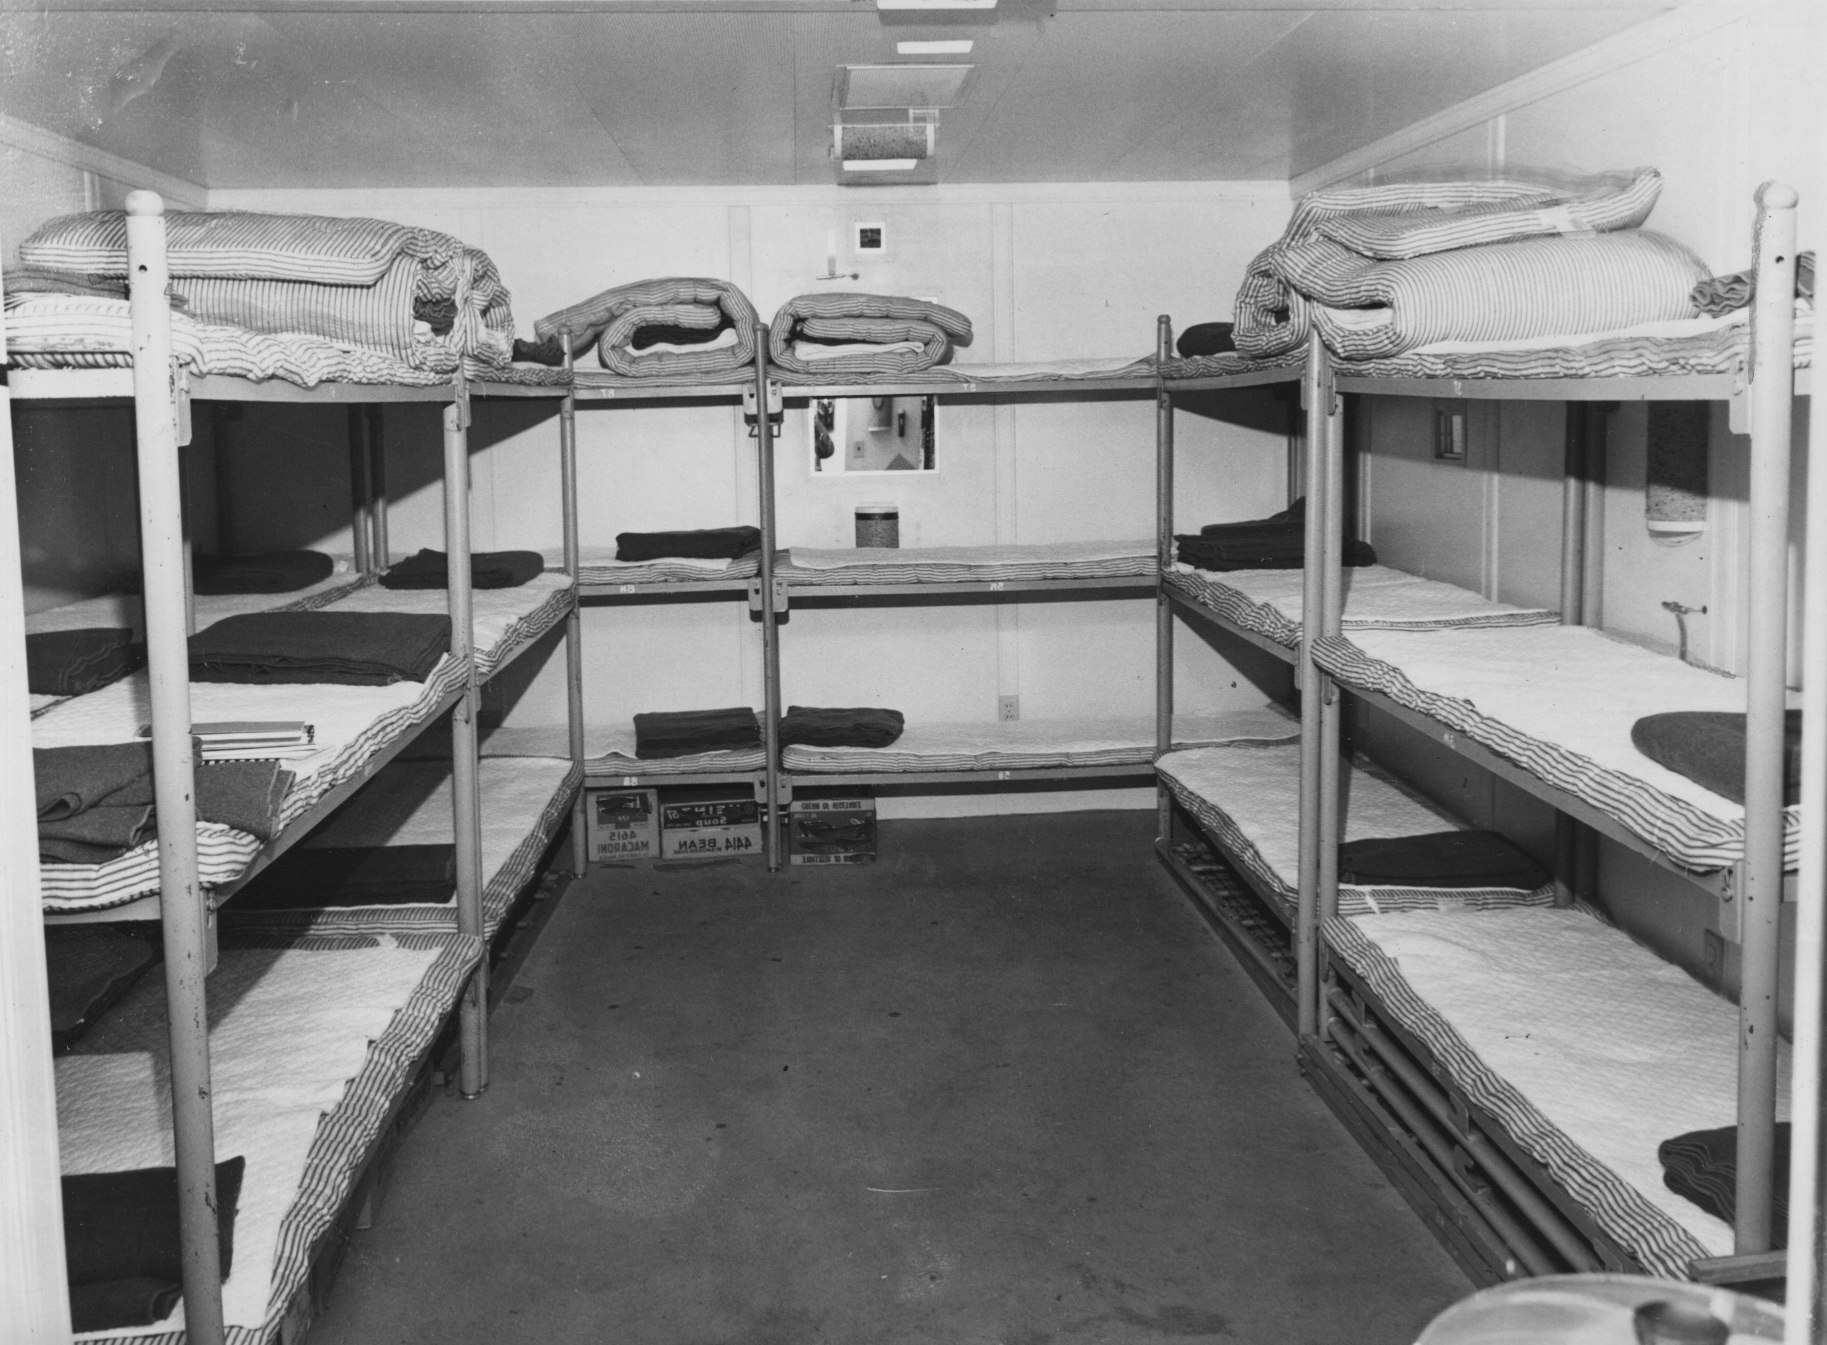 Pittsburgh S Fallout Shelters